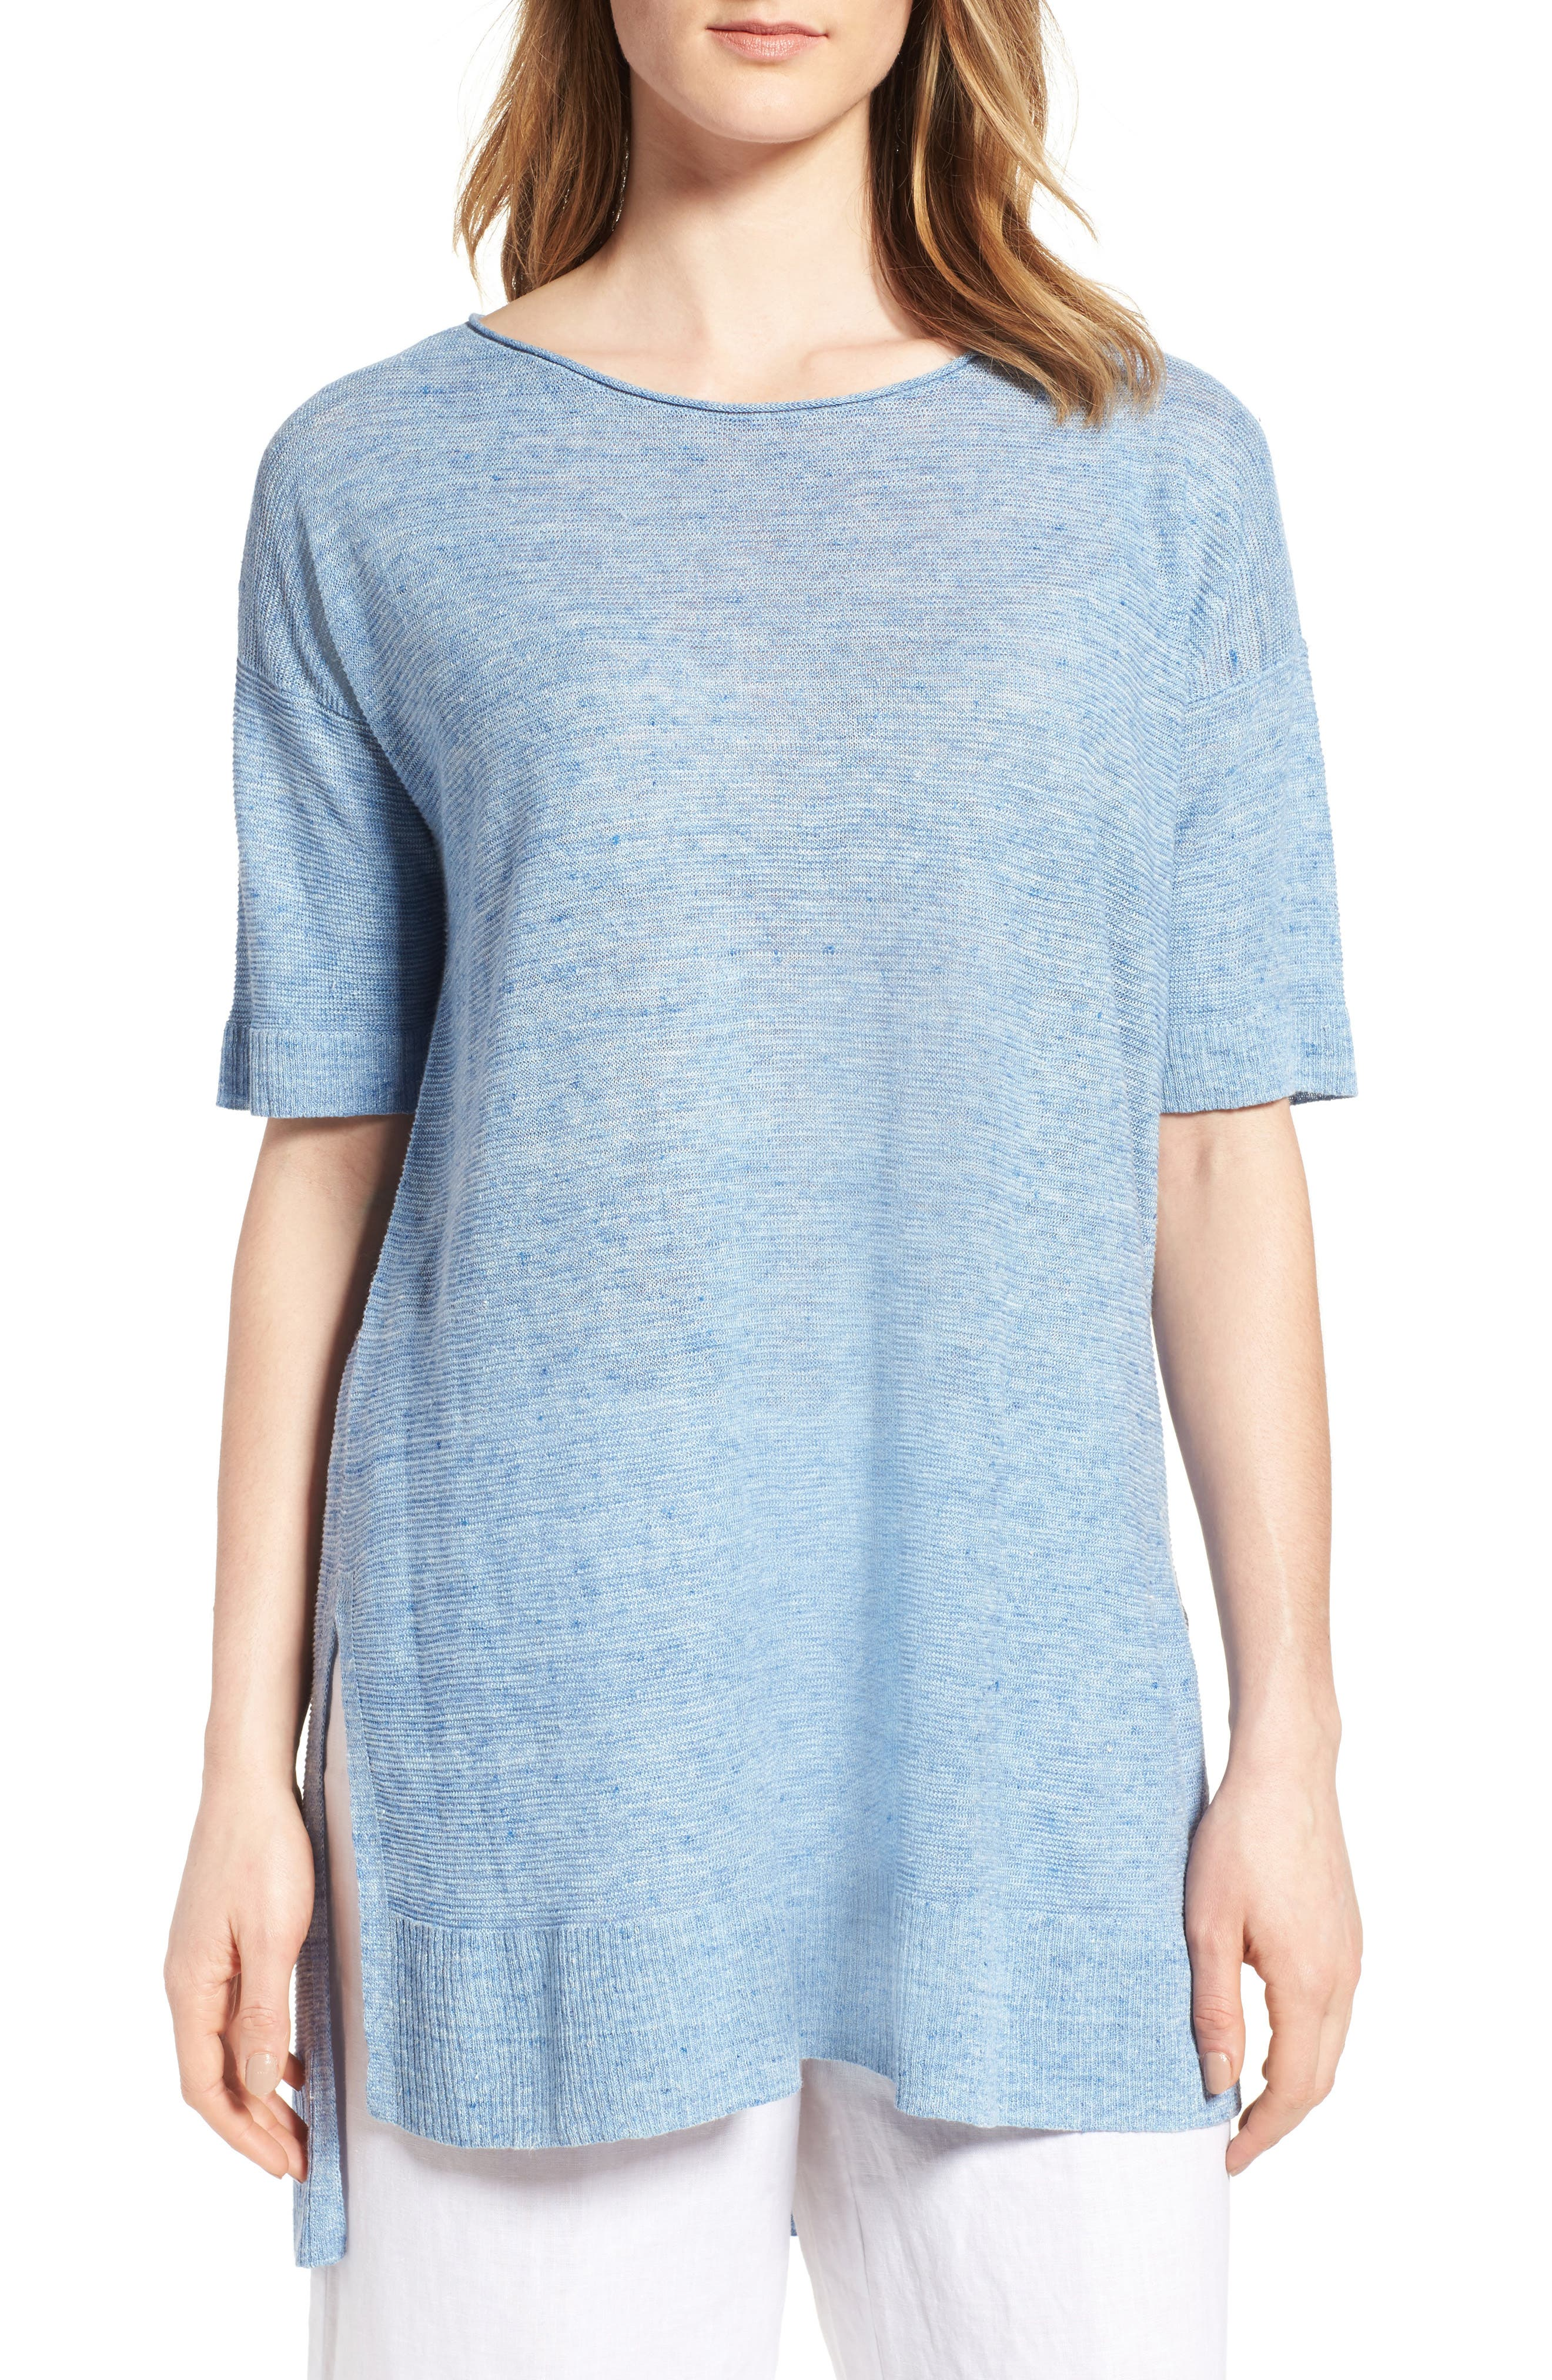 Eileen Fisher Boxy Linen Top (Regular & Petite)